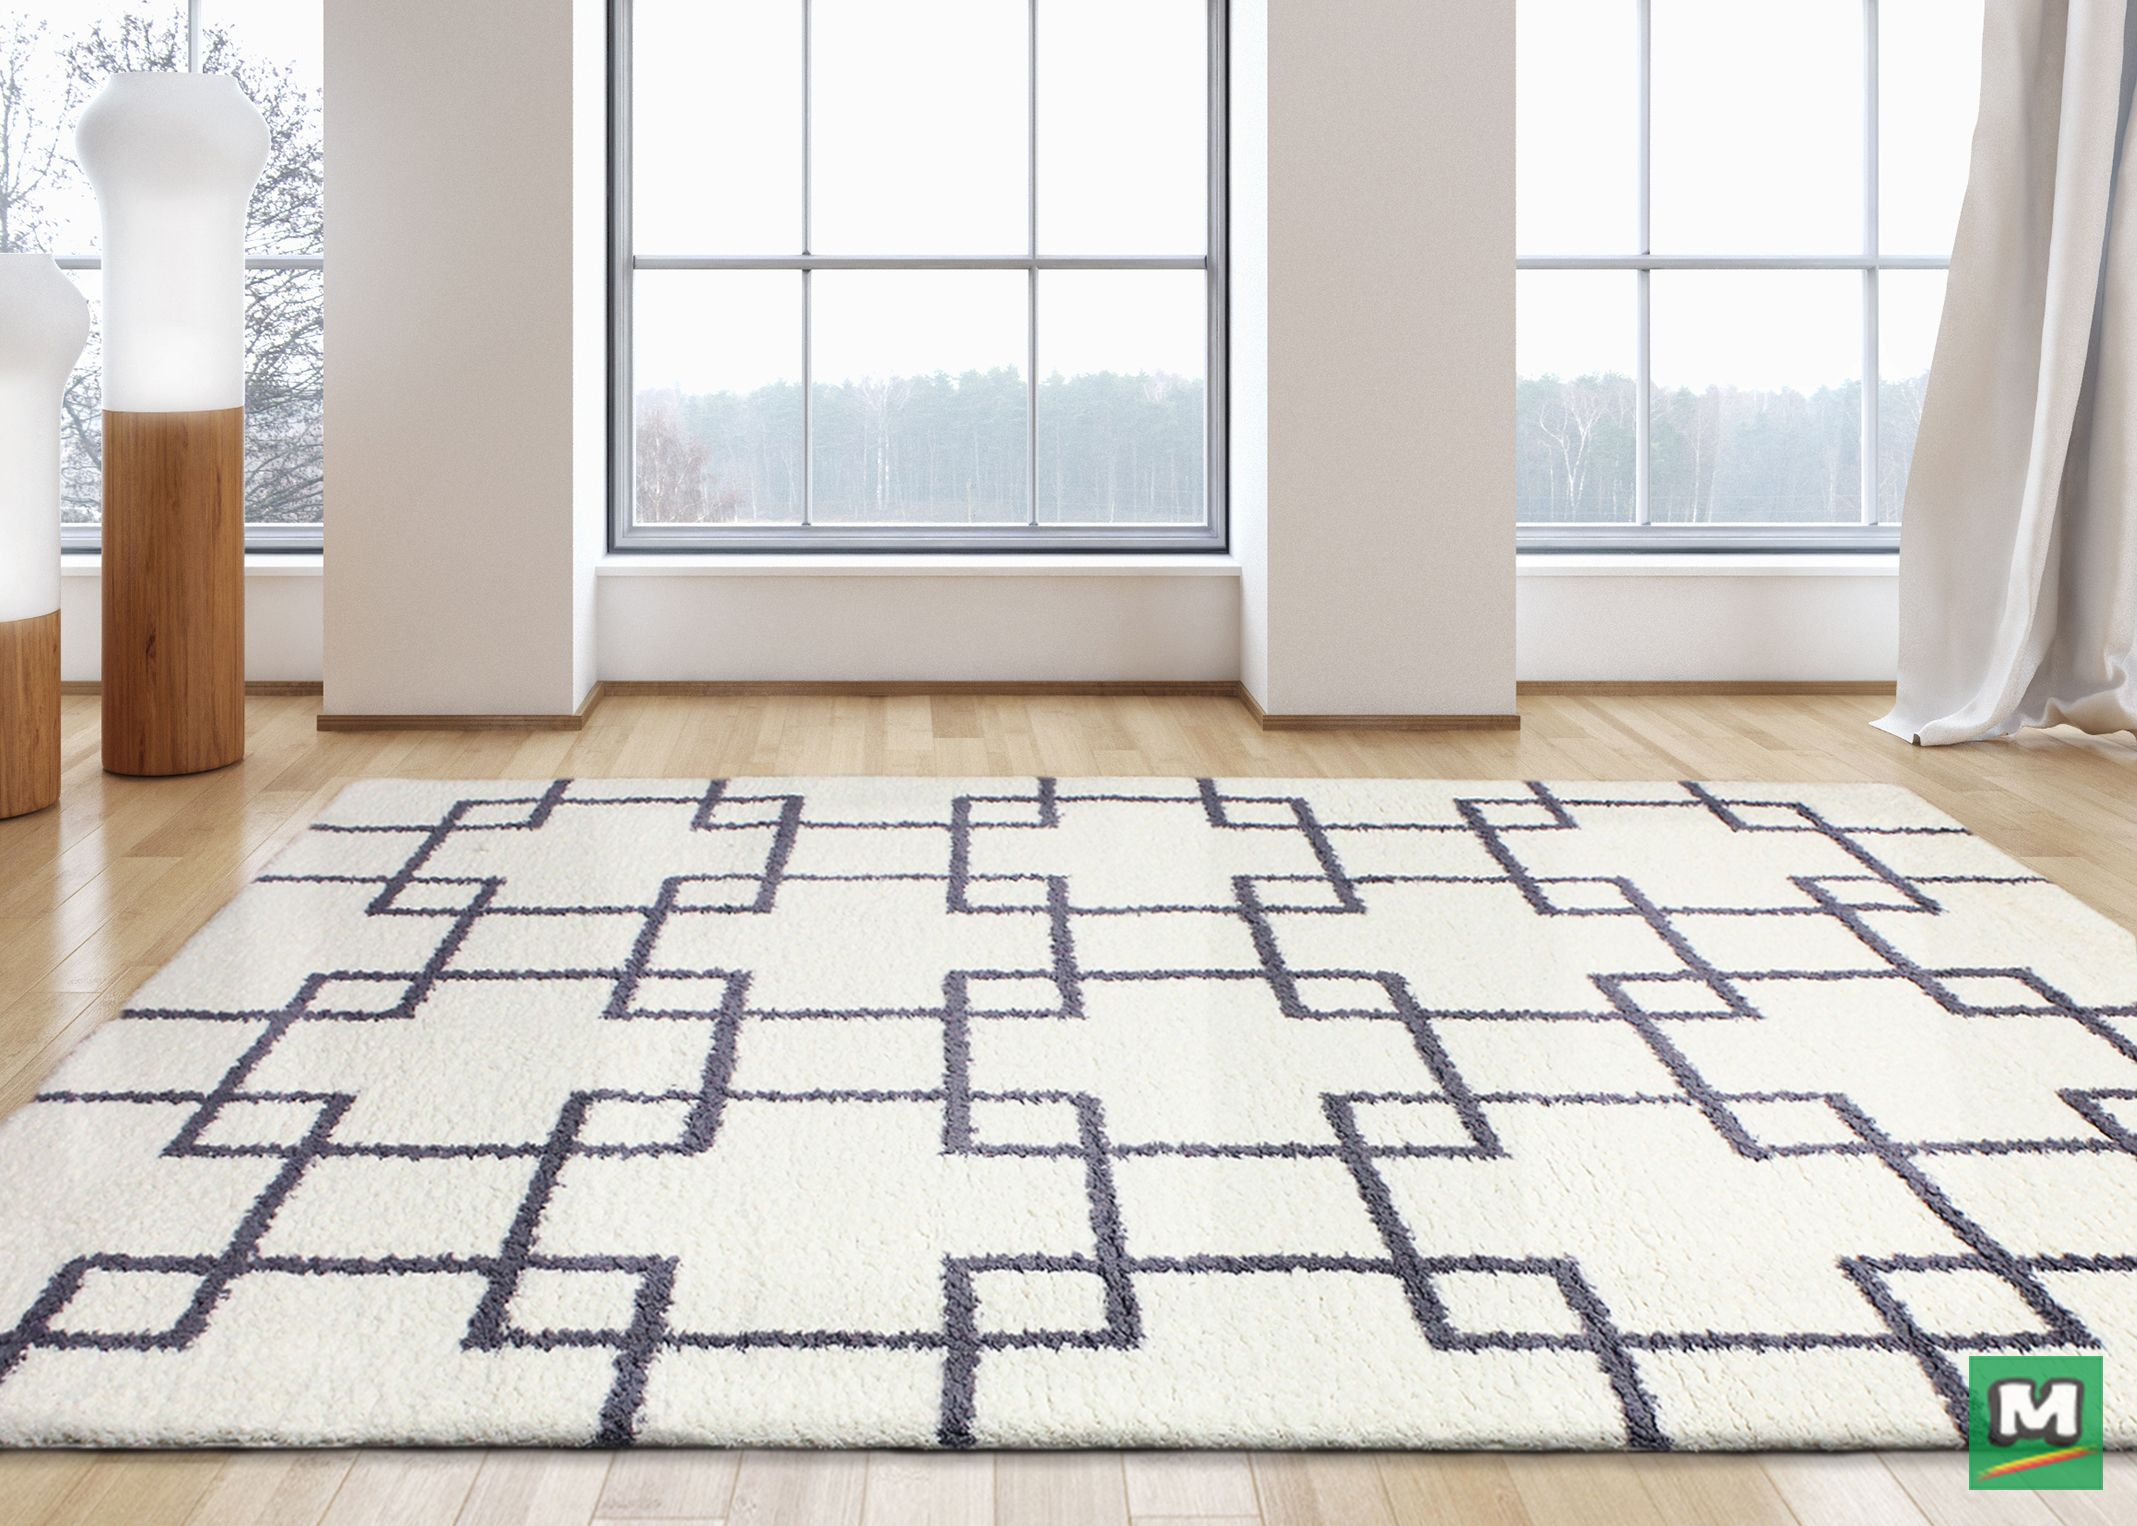 This 7 10 X 10 4 Serenity Ivory Area Rug Is A Fantastic Addition To Any Room Created With Superior Construction Th Area Rug Decor Shag Area Rug Area Rugs